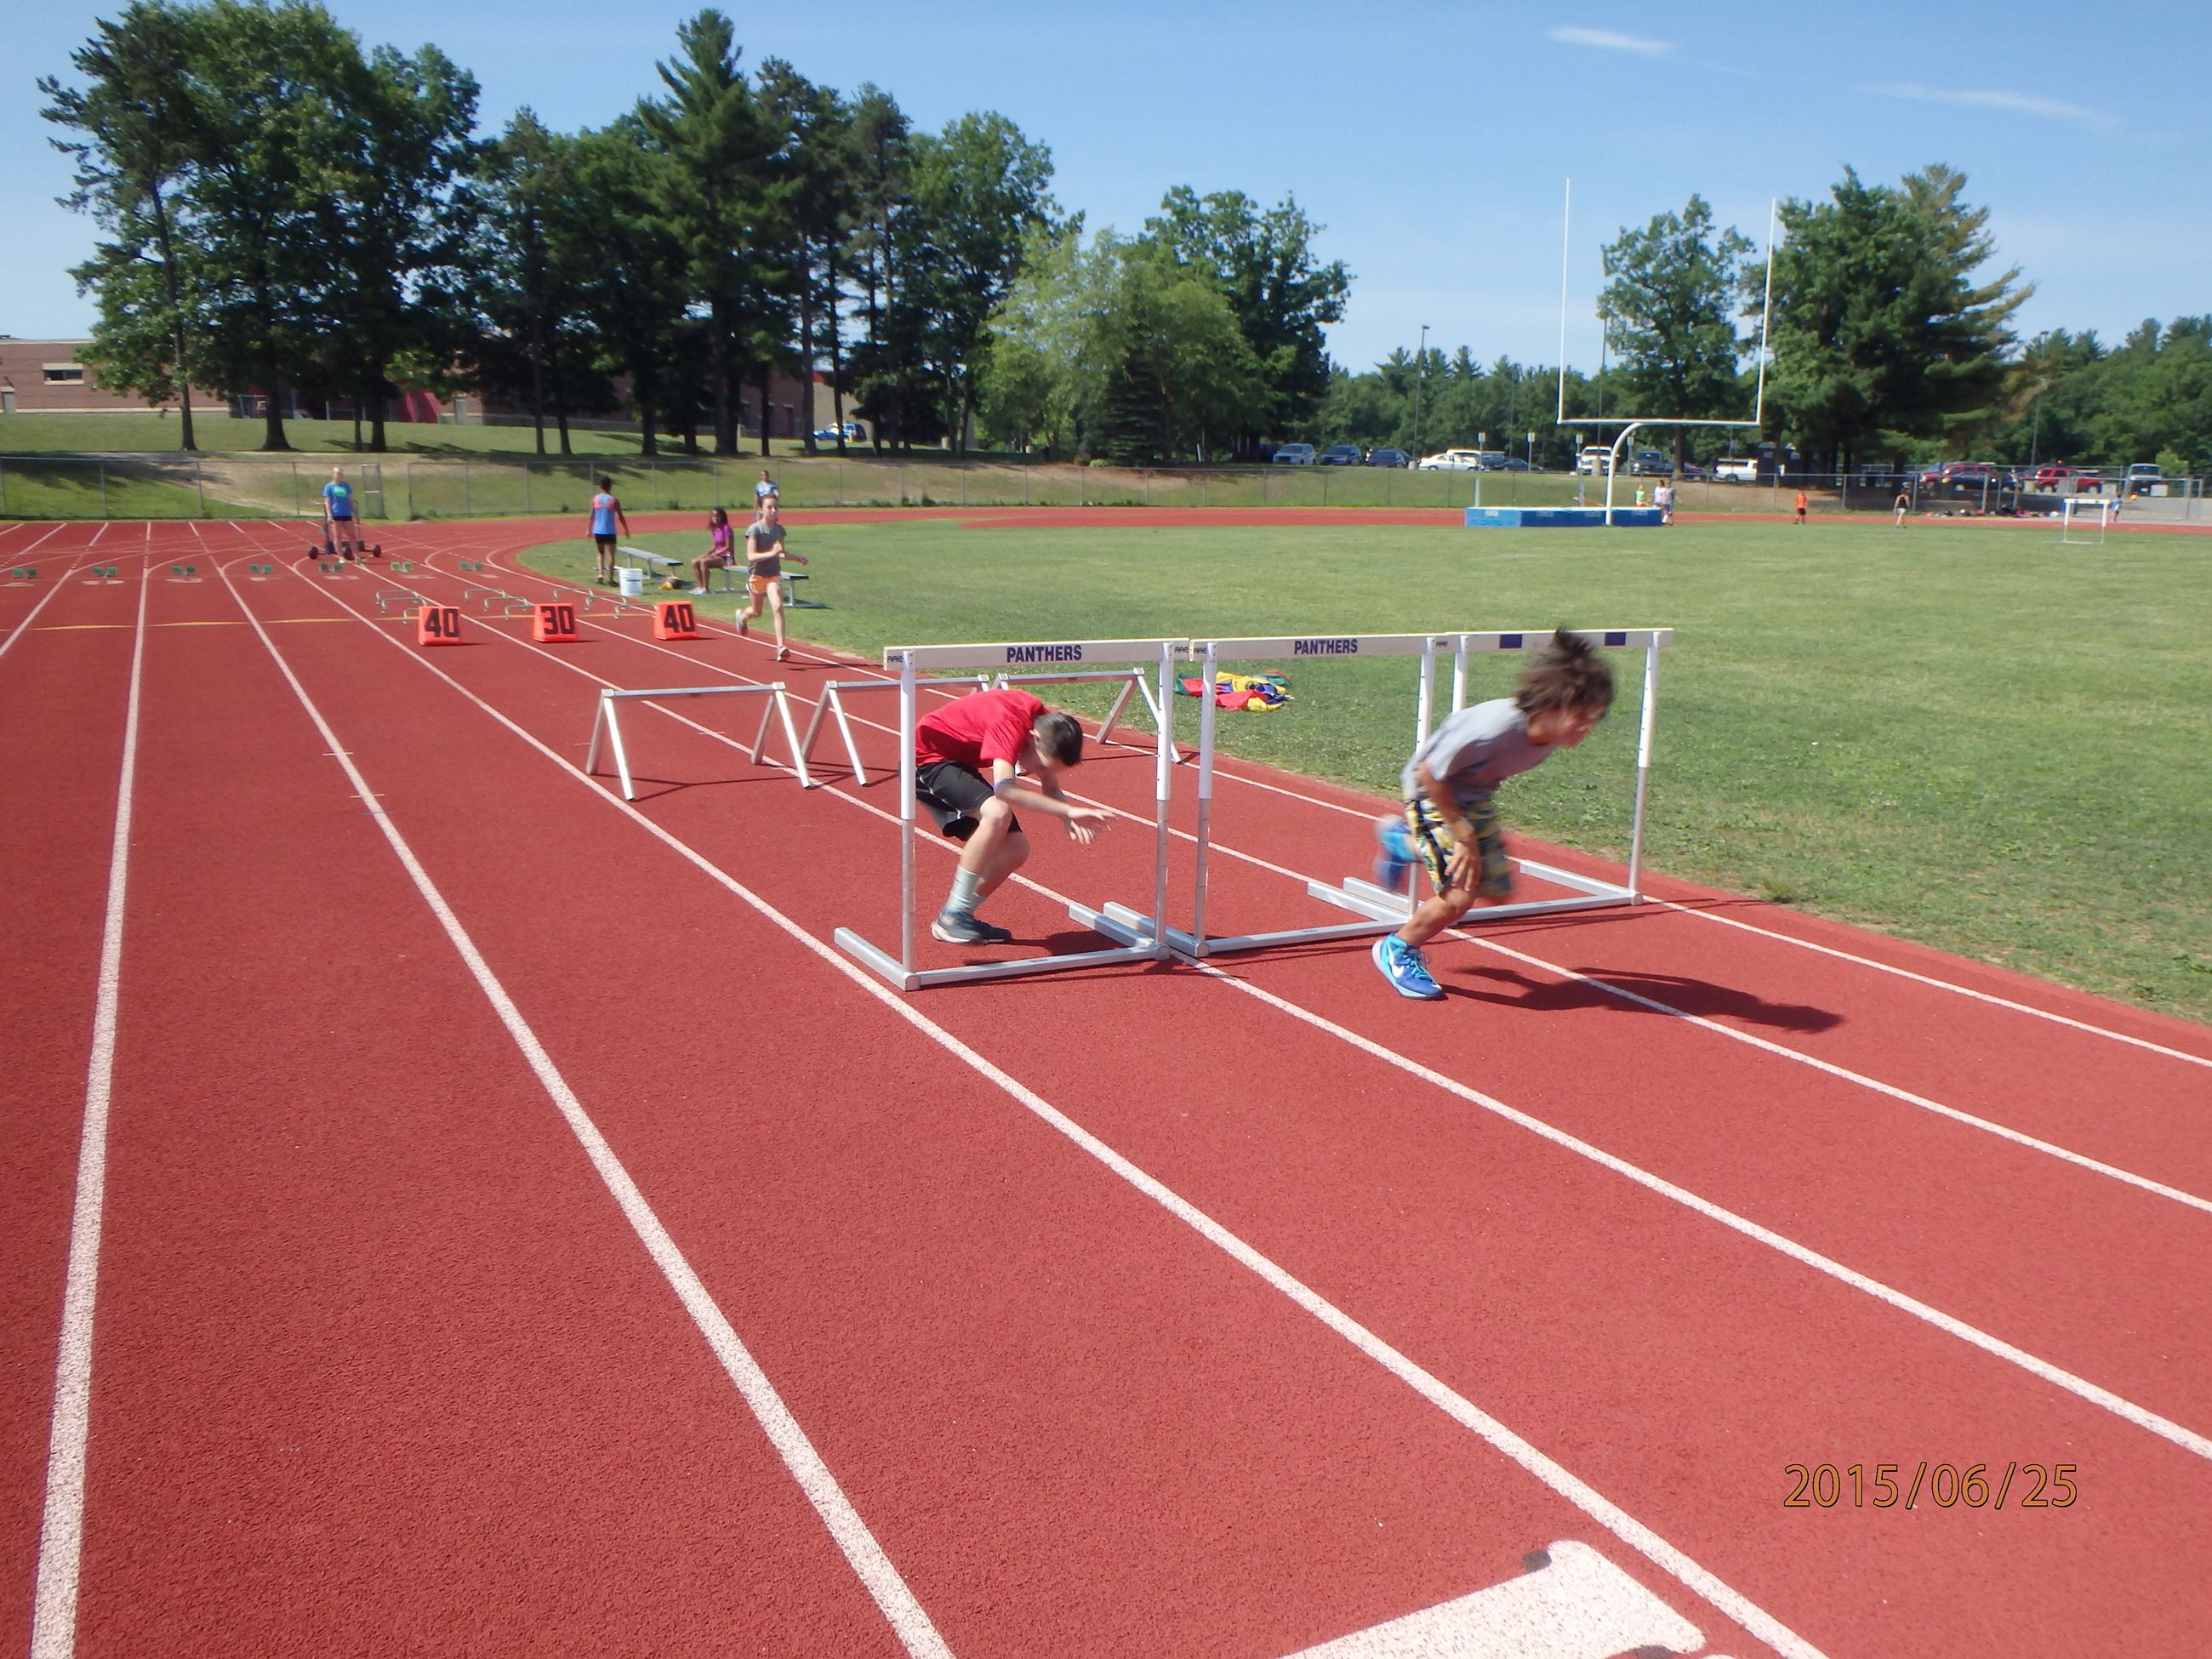 Track and Field Camp runners practicing hurdles.